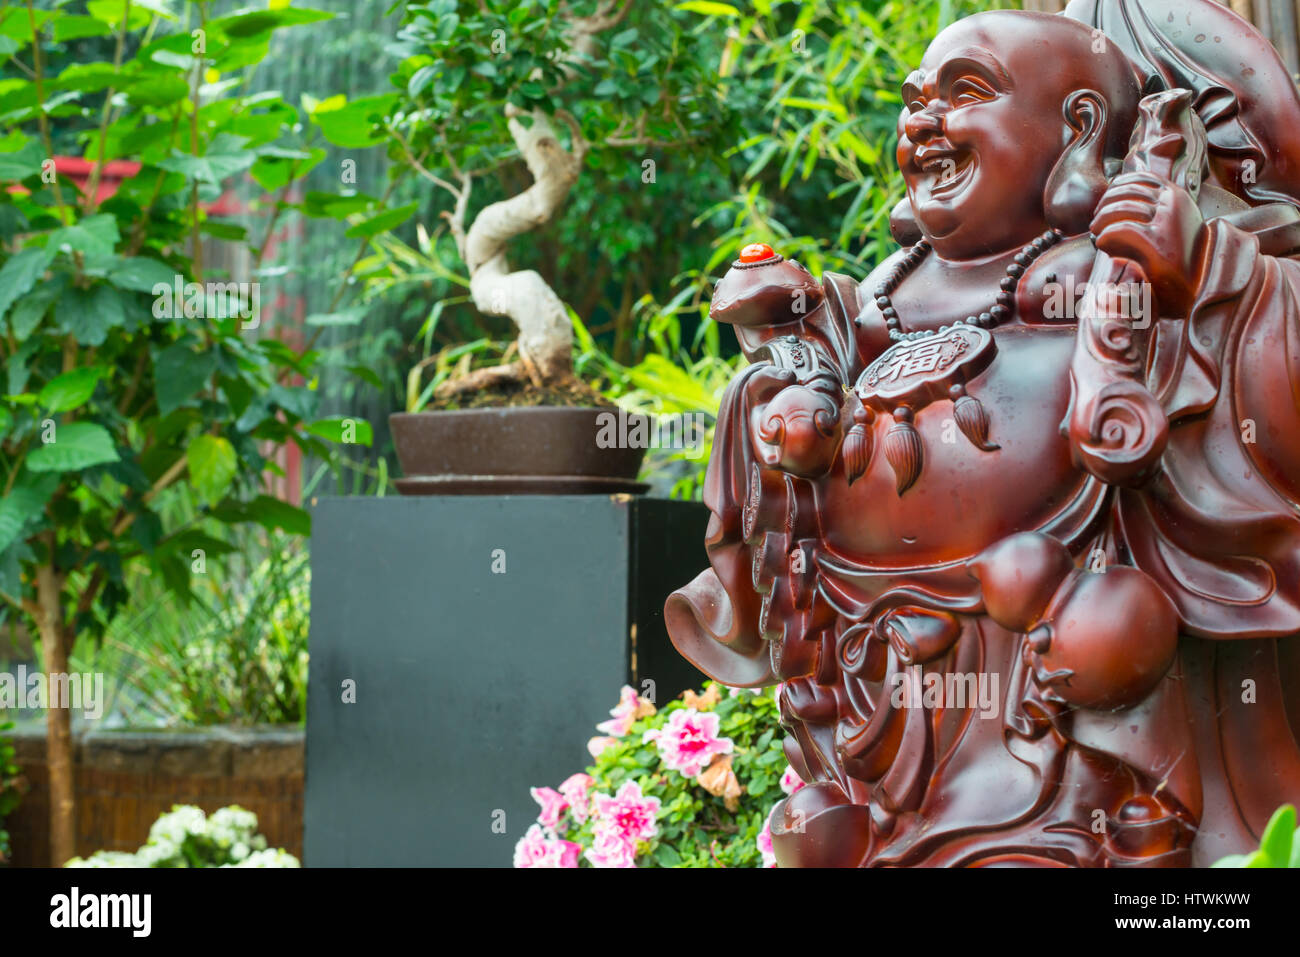 Laughing Buddha Statue In A Chinese Themed Garden Stock Photo Alamy